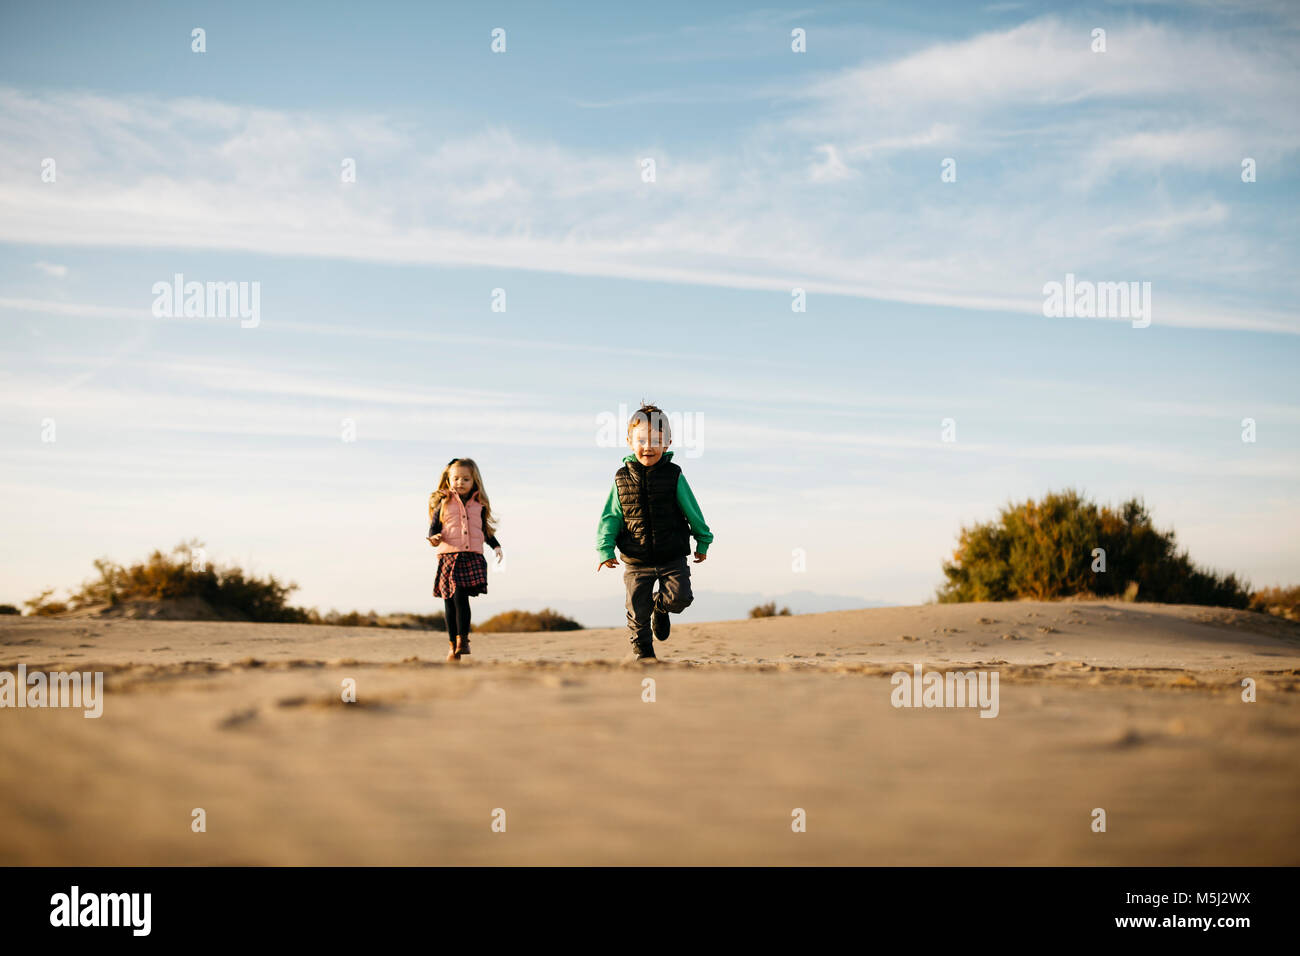 Two children running on the beach in winter - Stock Image